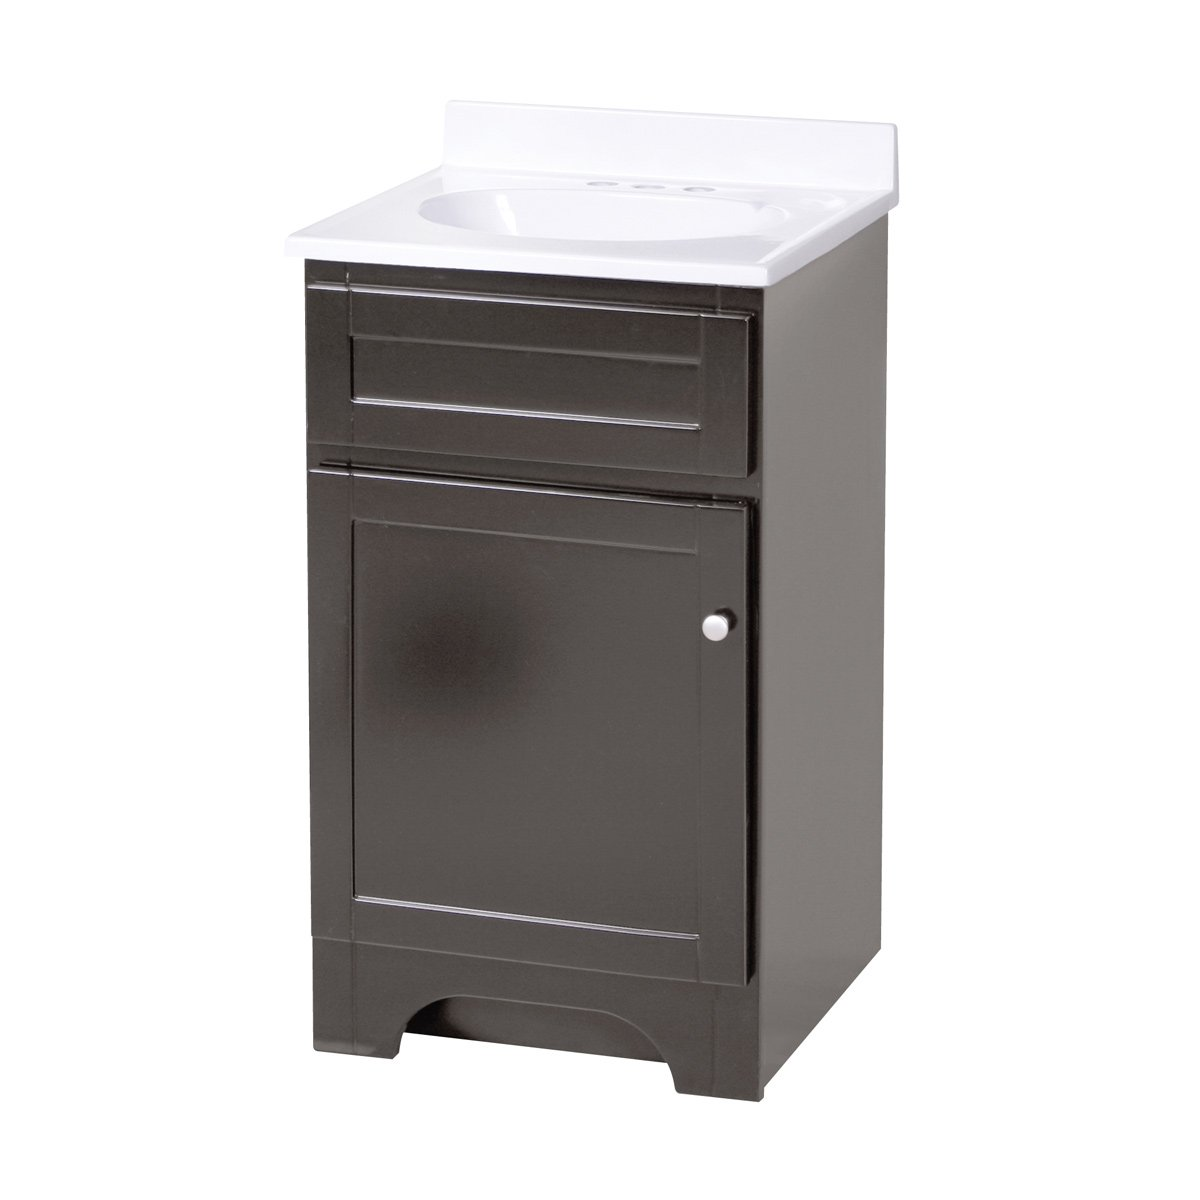 Foremost COEAT1816 Columbia 18-Inch Espresso Bath Vanity Combo - Bathroom  Vanities - Amazon